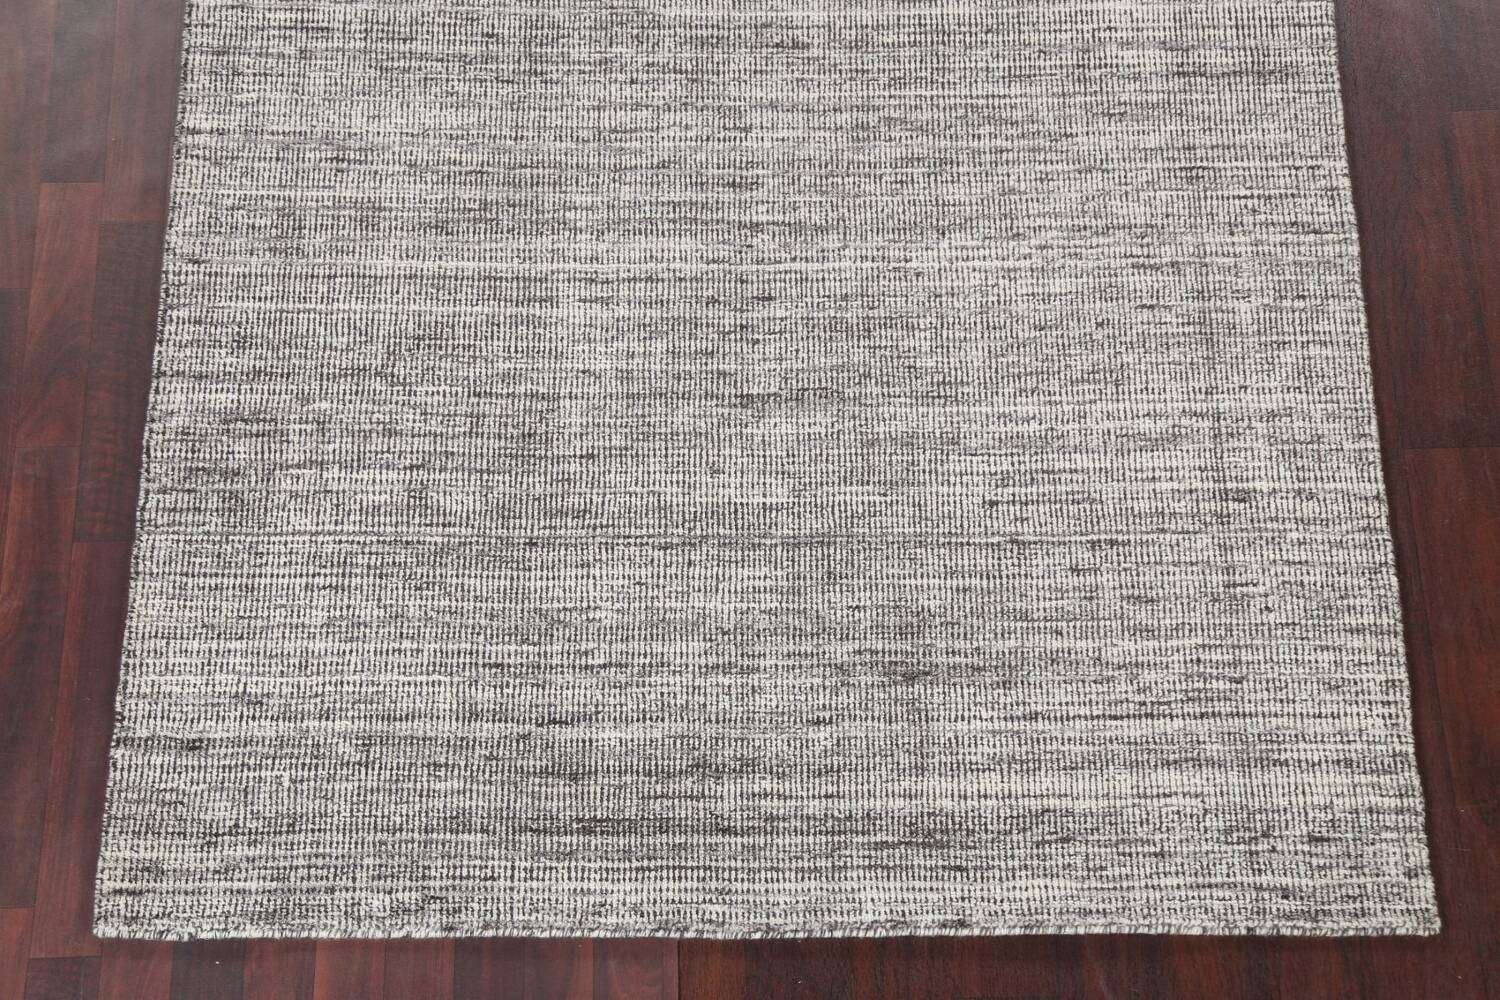 Abstract Gabbeh Wool Area Rug 5x8 image 6